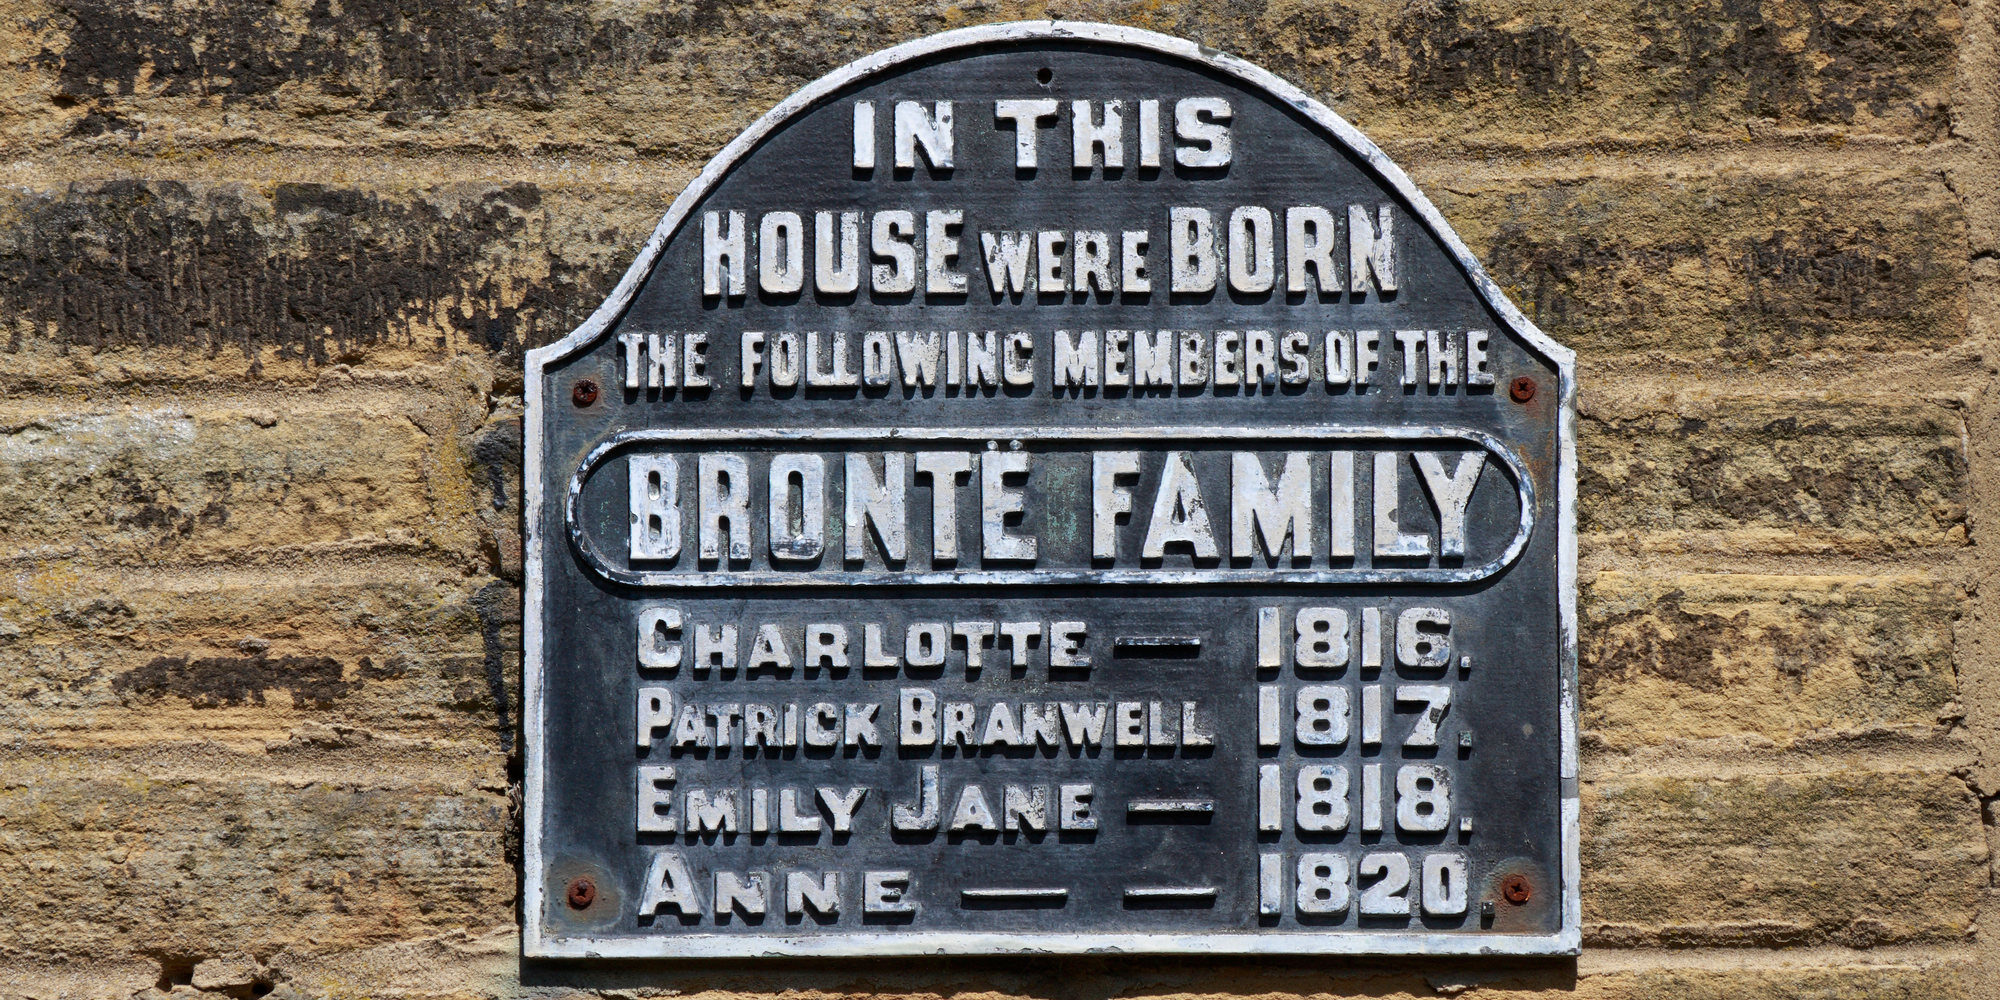 CPR97T Bronte family birthplace plaque, Thornton, Bradford, West Yorkshire, England, UK.